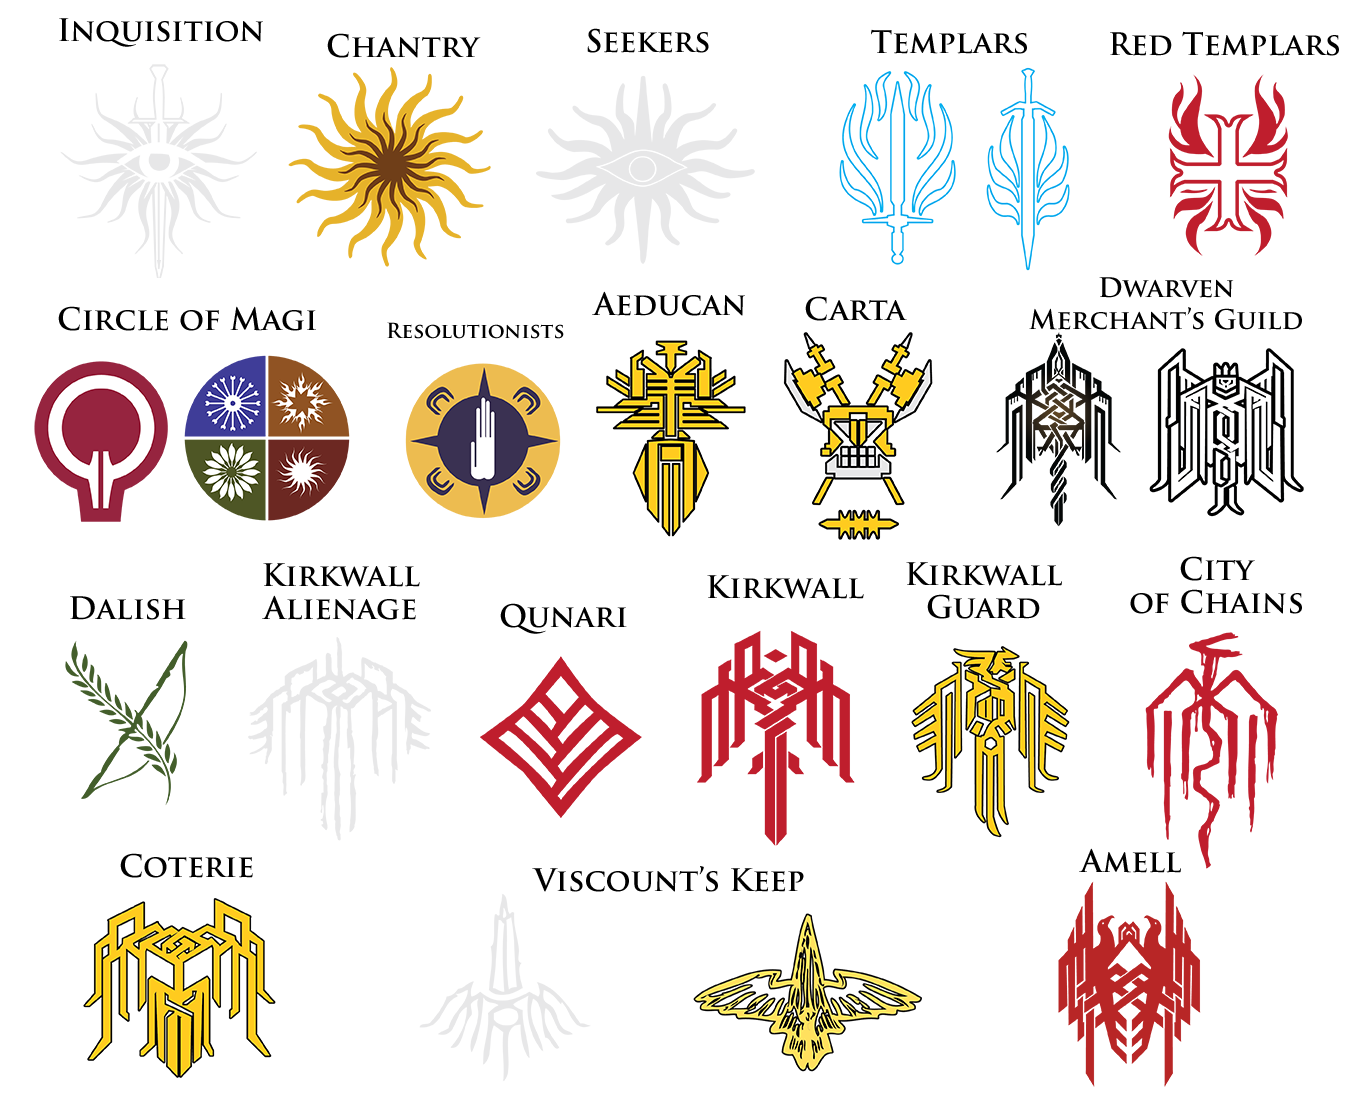 Dragon age symbols and meanings google search bioware dragon age symbols and meanings google search gumiabroncs Image collections